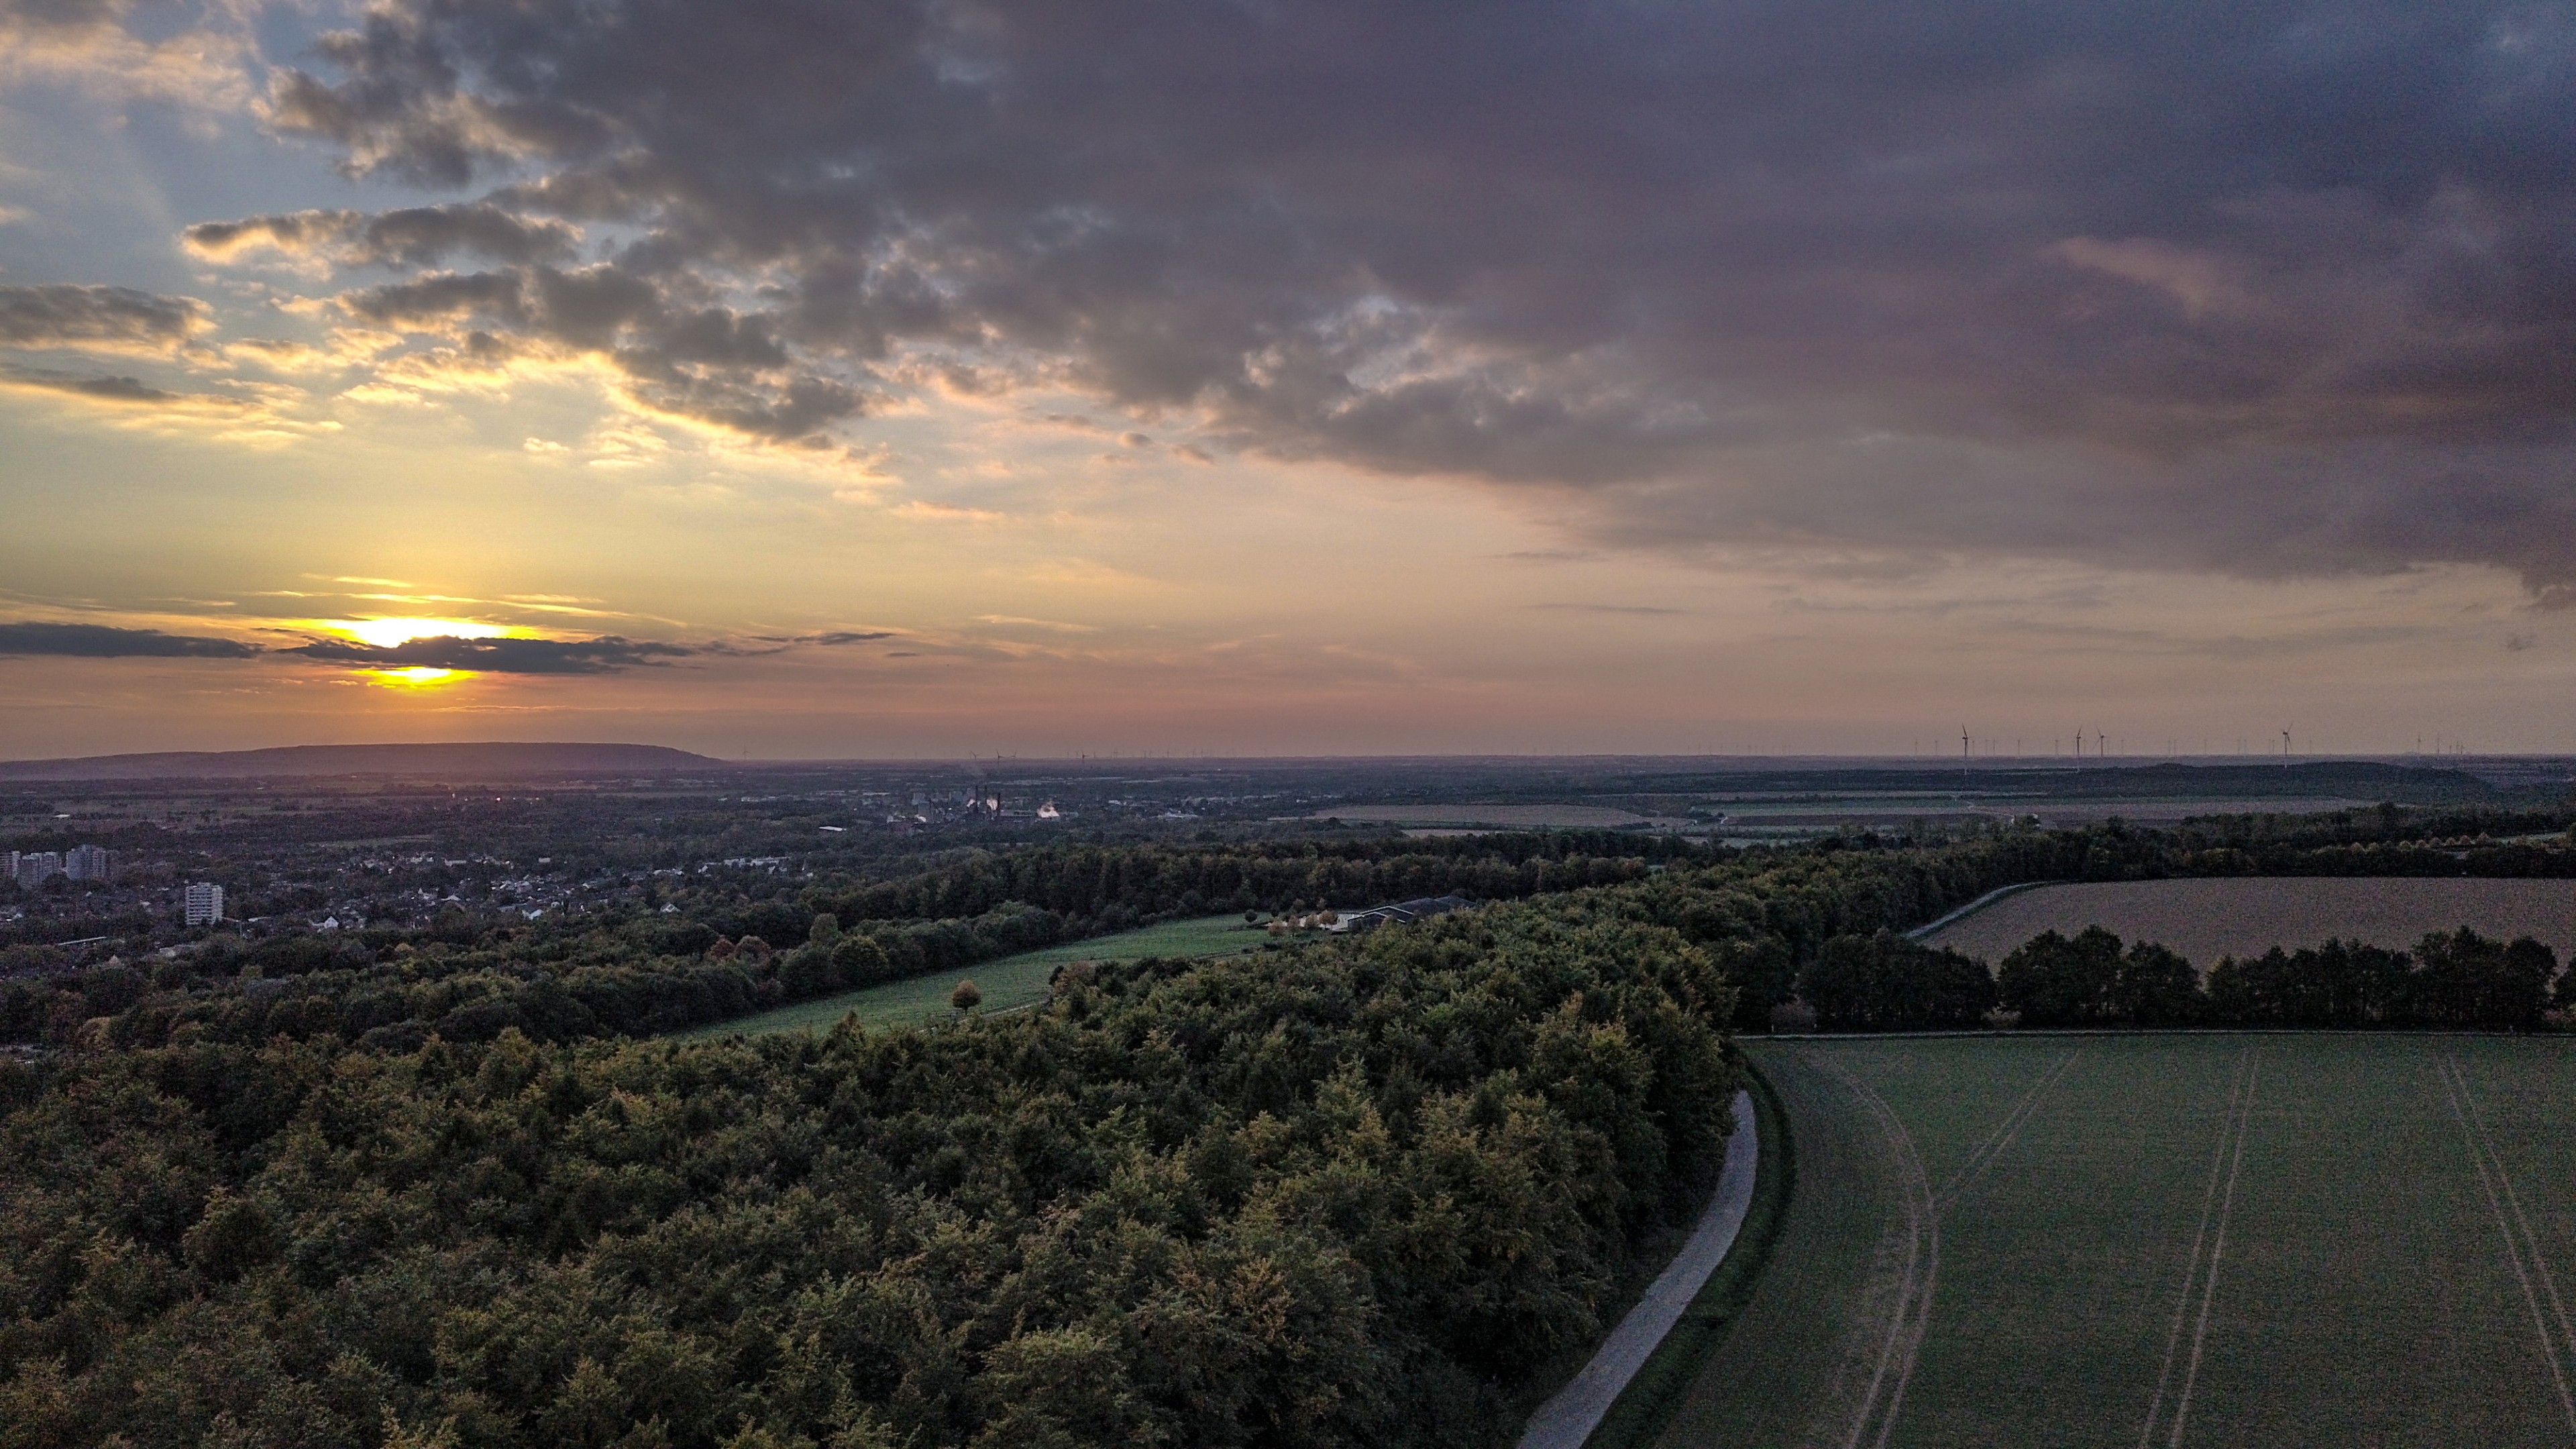 Sunset in Germany wallpaper